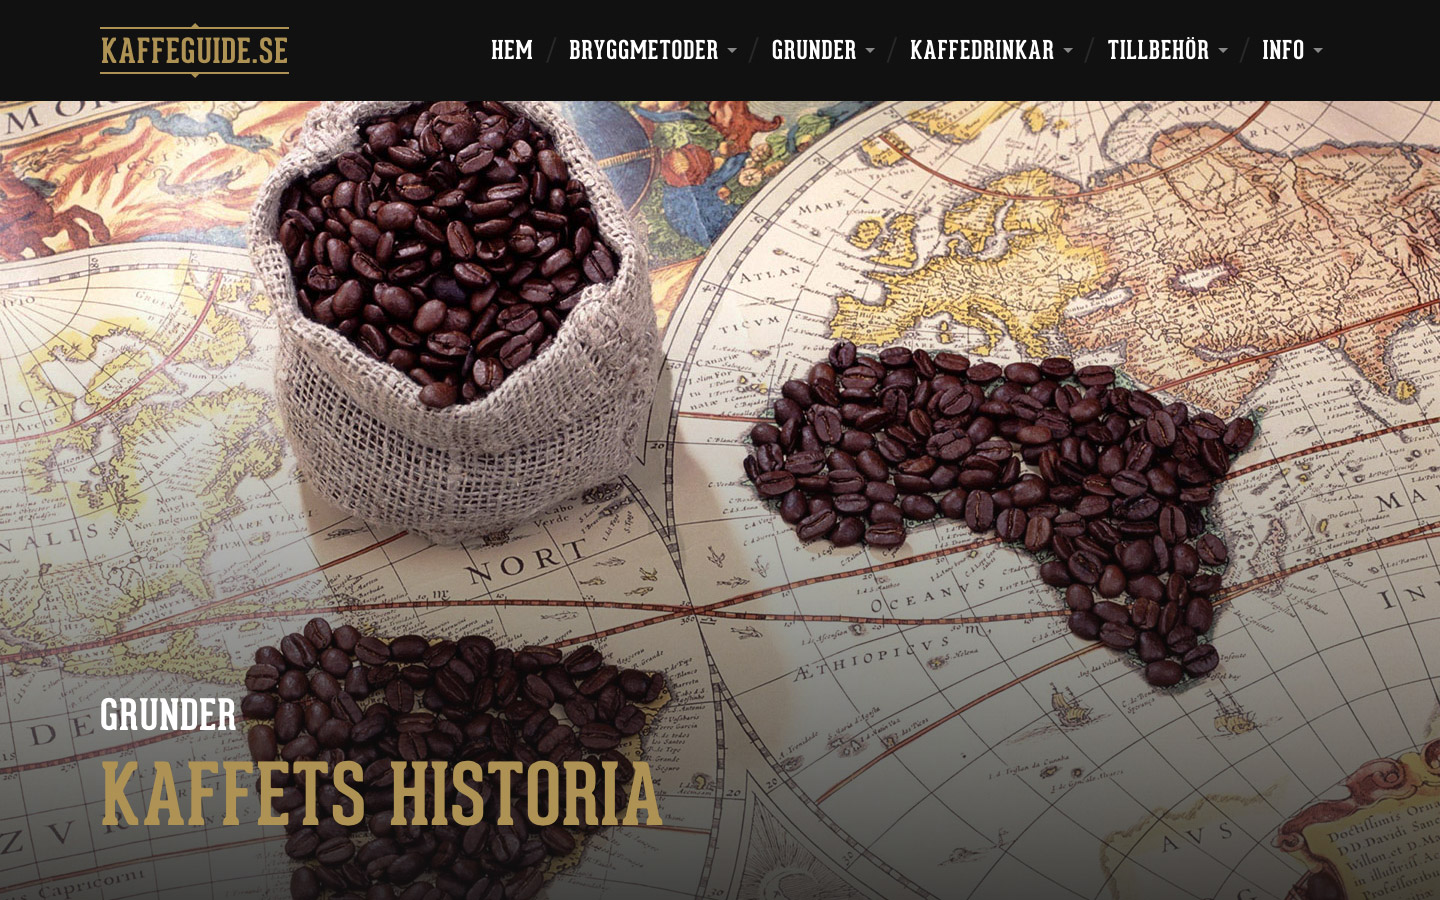 Article page for the history of coffee on Kaffeguide.se.